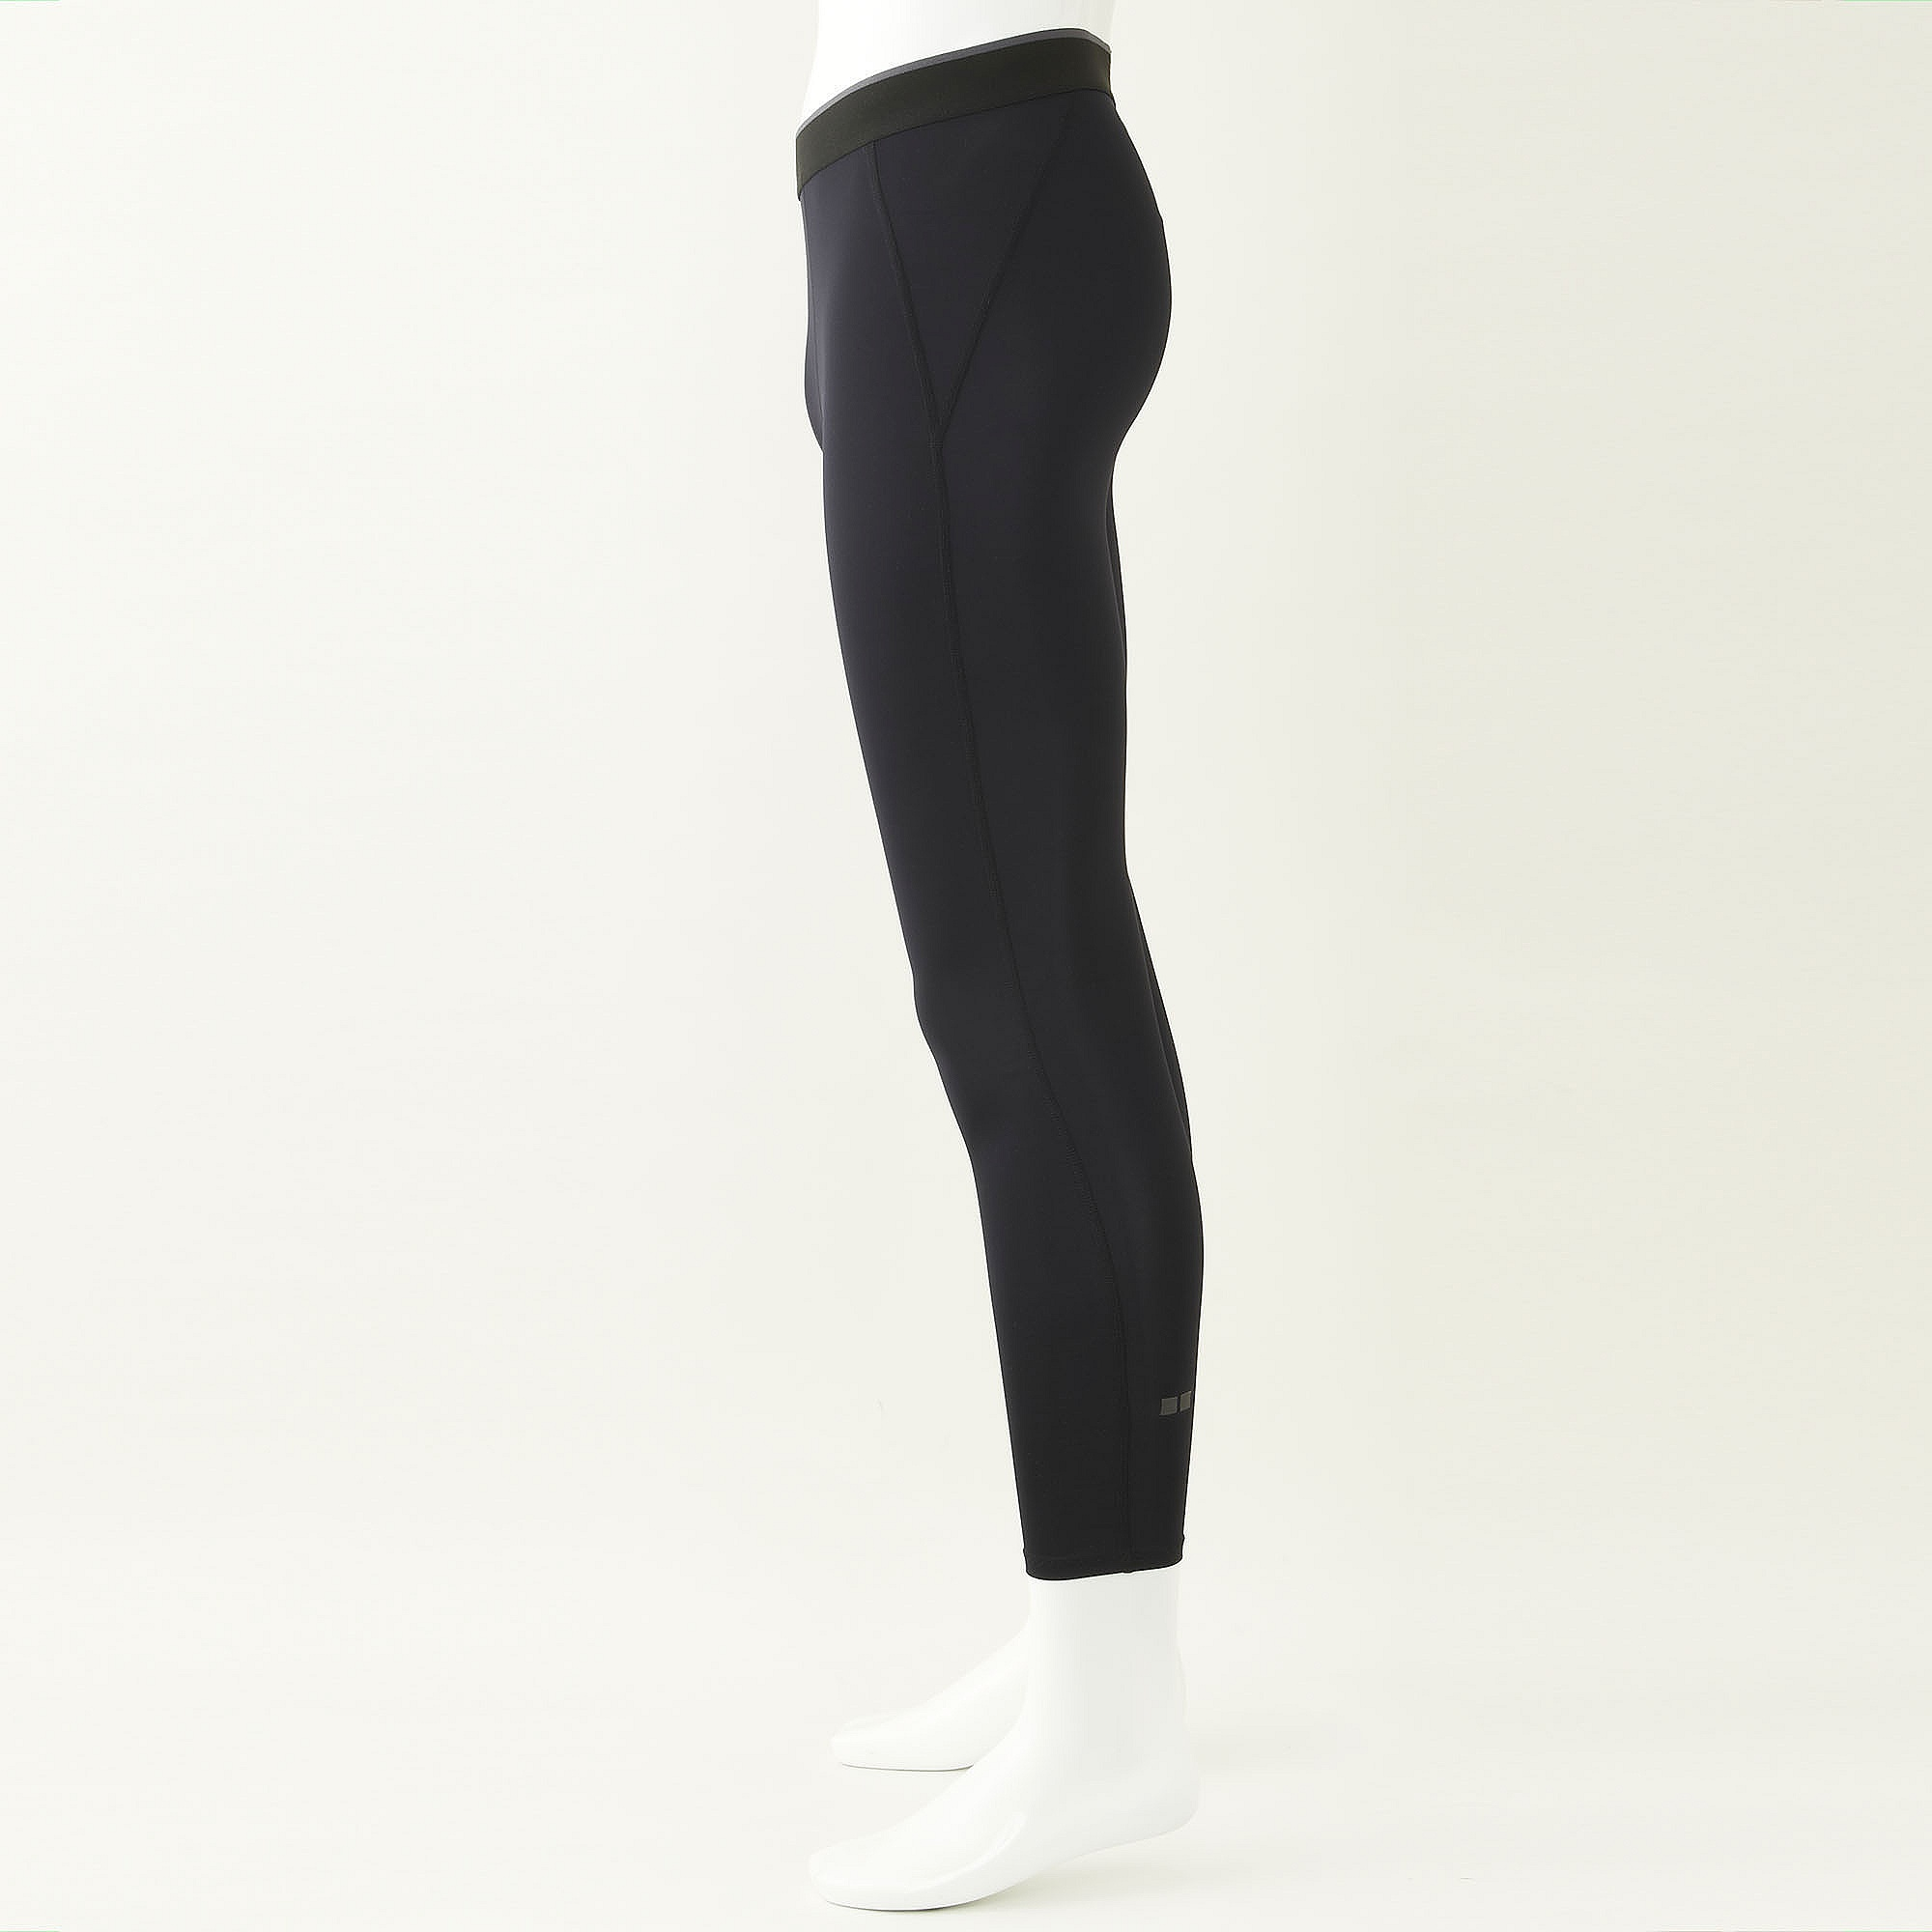 7deef4665c225 Uniqlo MEN AIRISM PERFORMANCE SUPPORT TIGHTS at £9.9 | love the brands